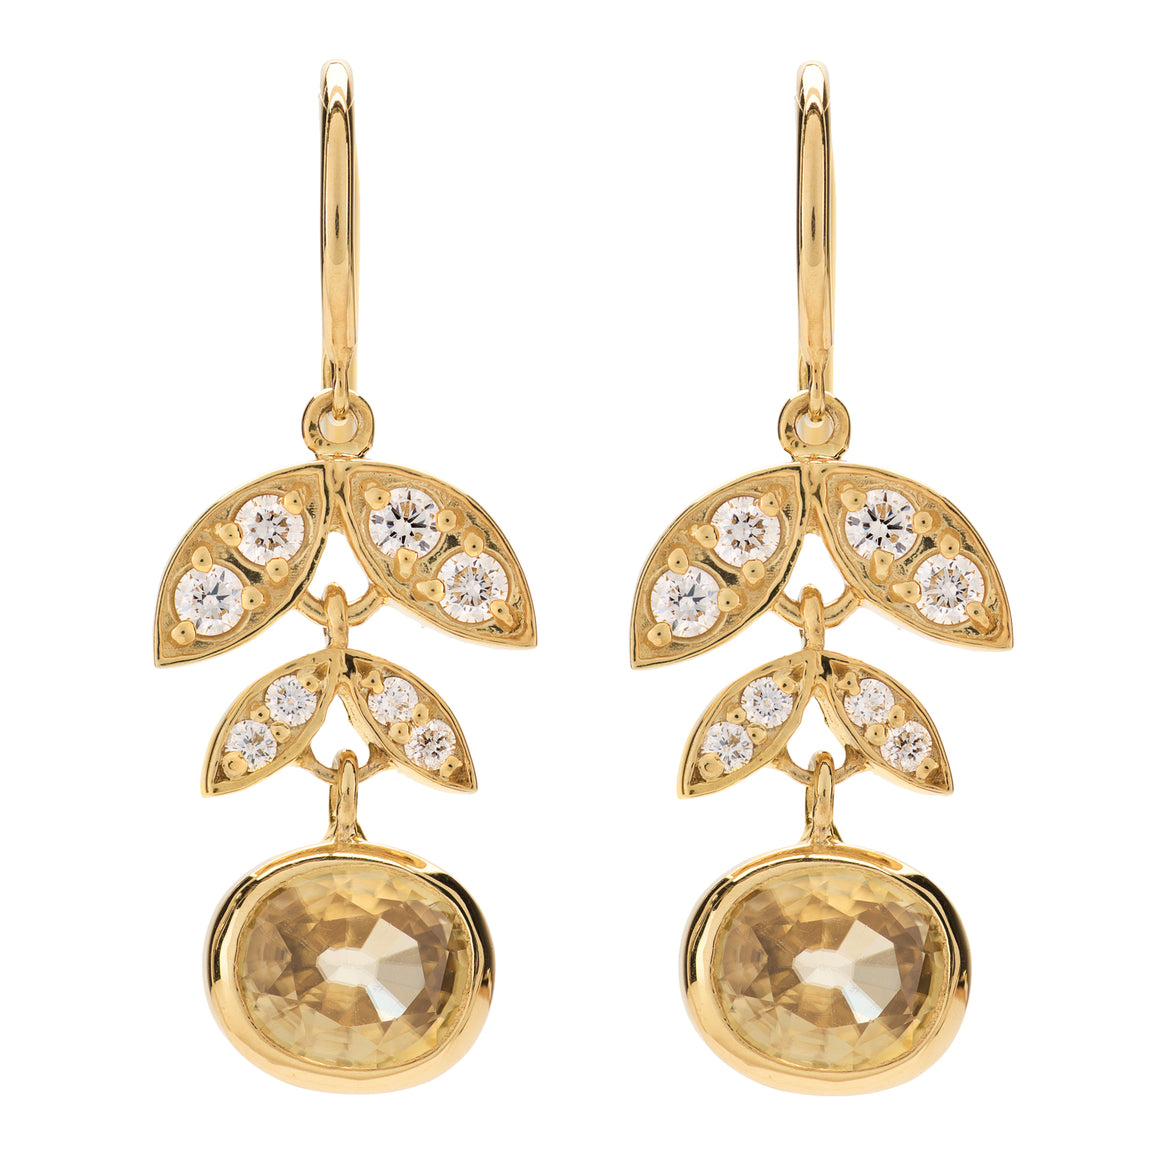 18K GOLDEN LOTUS EARRINGS